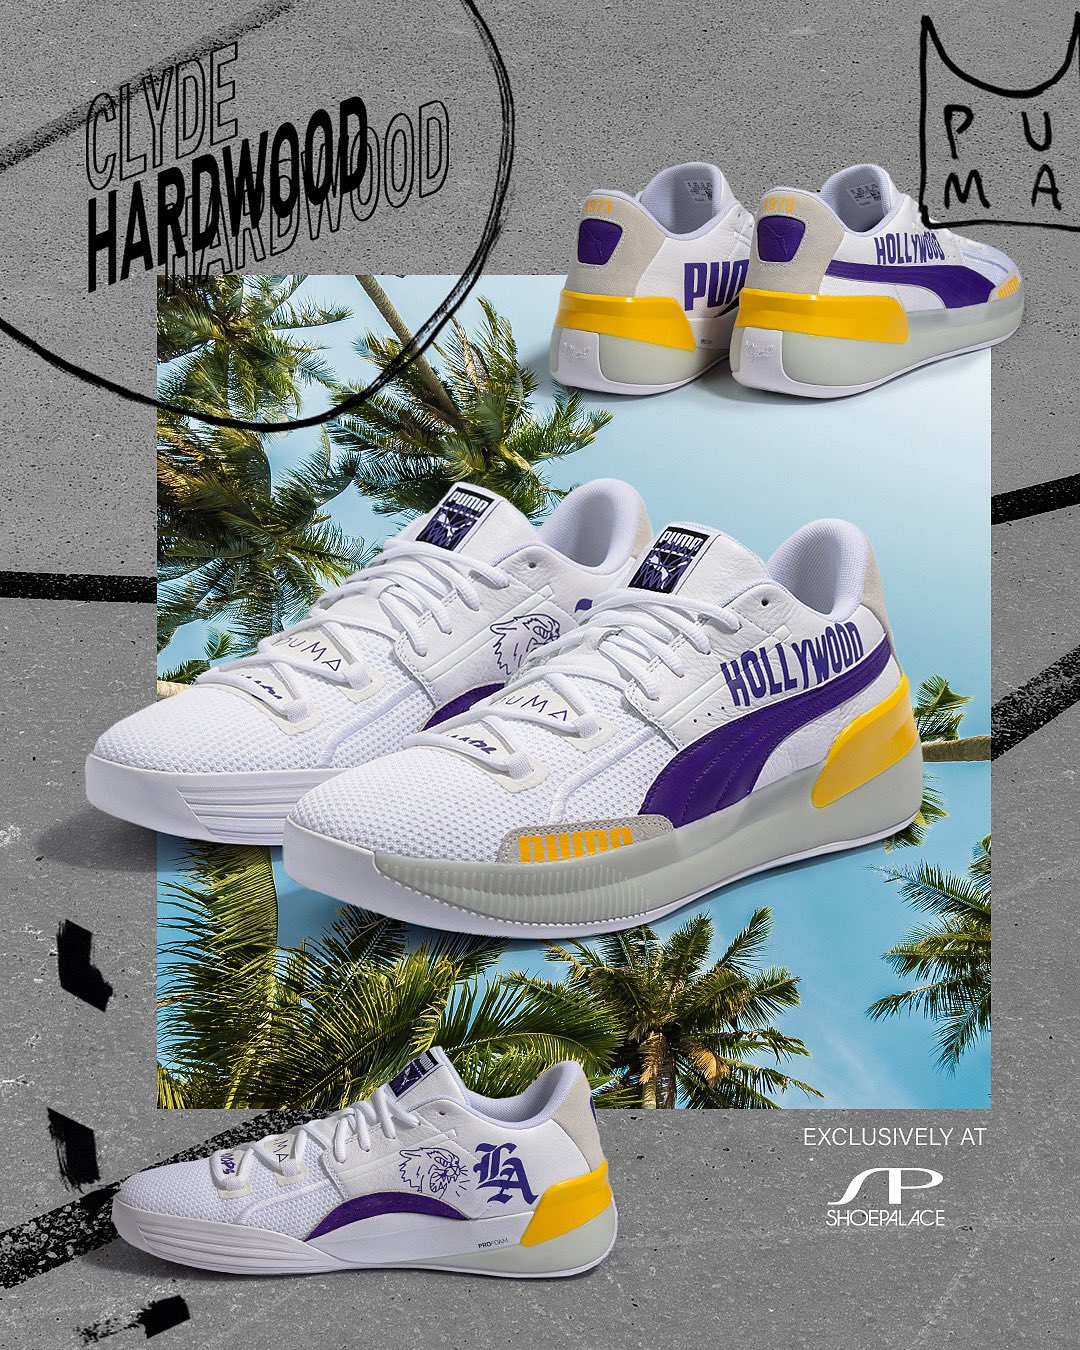 Shoepalace Com On Twitter Shoe Palace Exclusive Puma Pumahoops Clyde Hardwood Only 150 Pairs Hand Painted By Alexander John Dropping Online Only At Https T Co O6e90gytfl On Sunday 12 22 Will Be